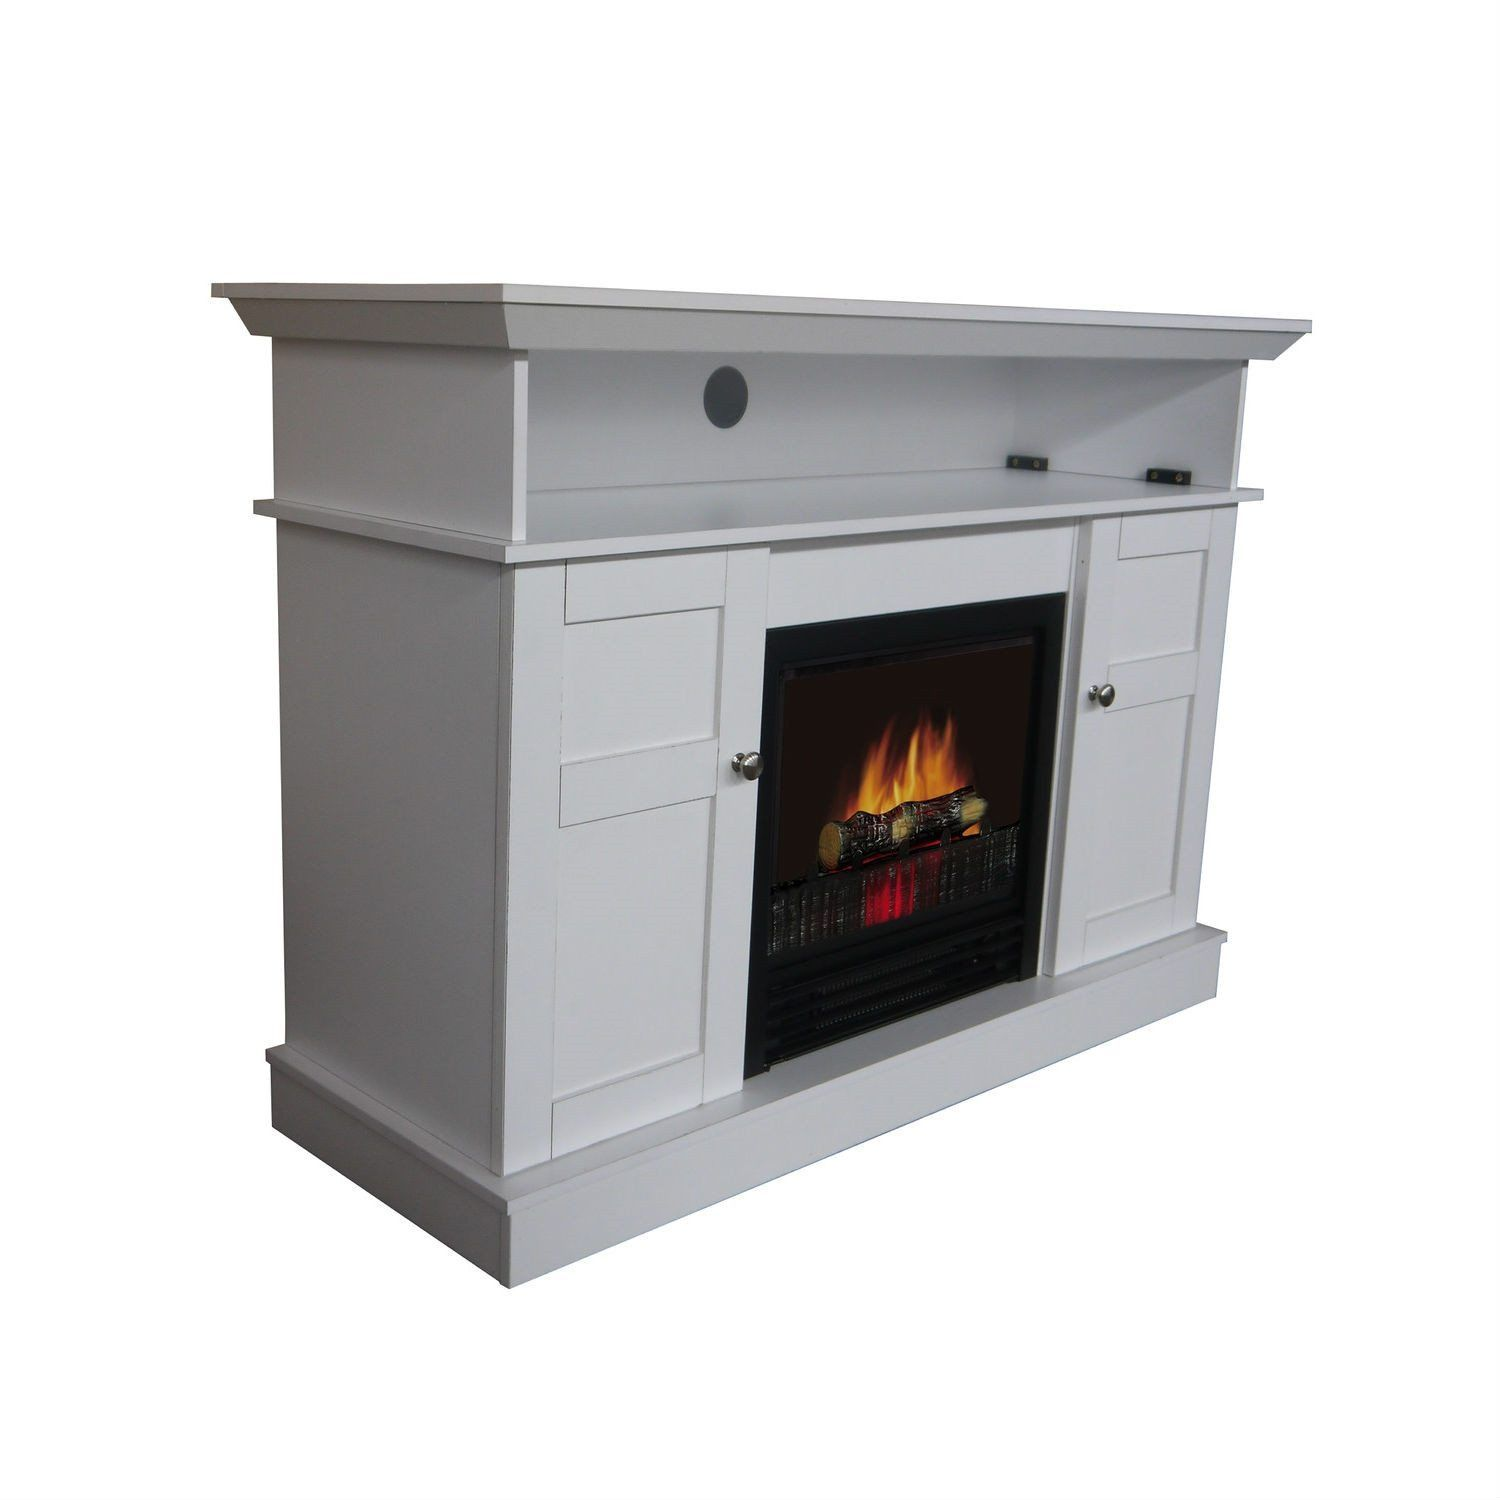 White Electric Fireplace Space Heater TV Stand Cabinet Home Sweet